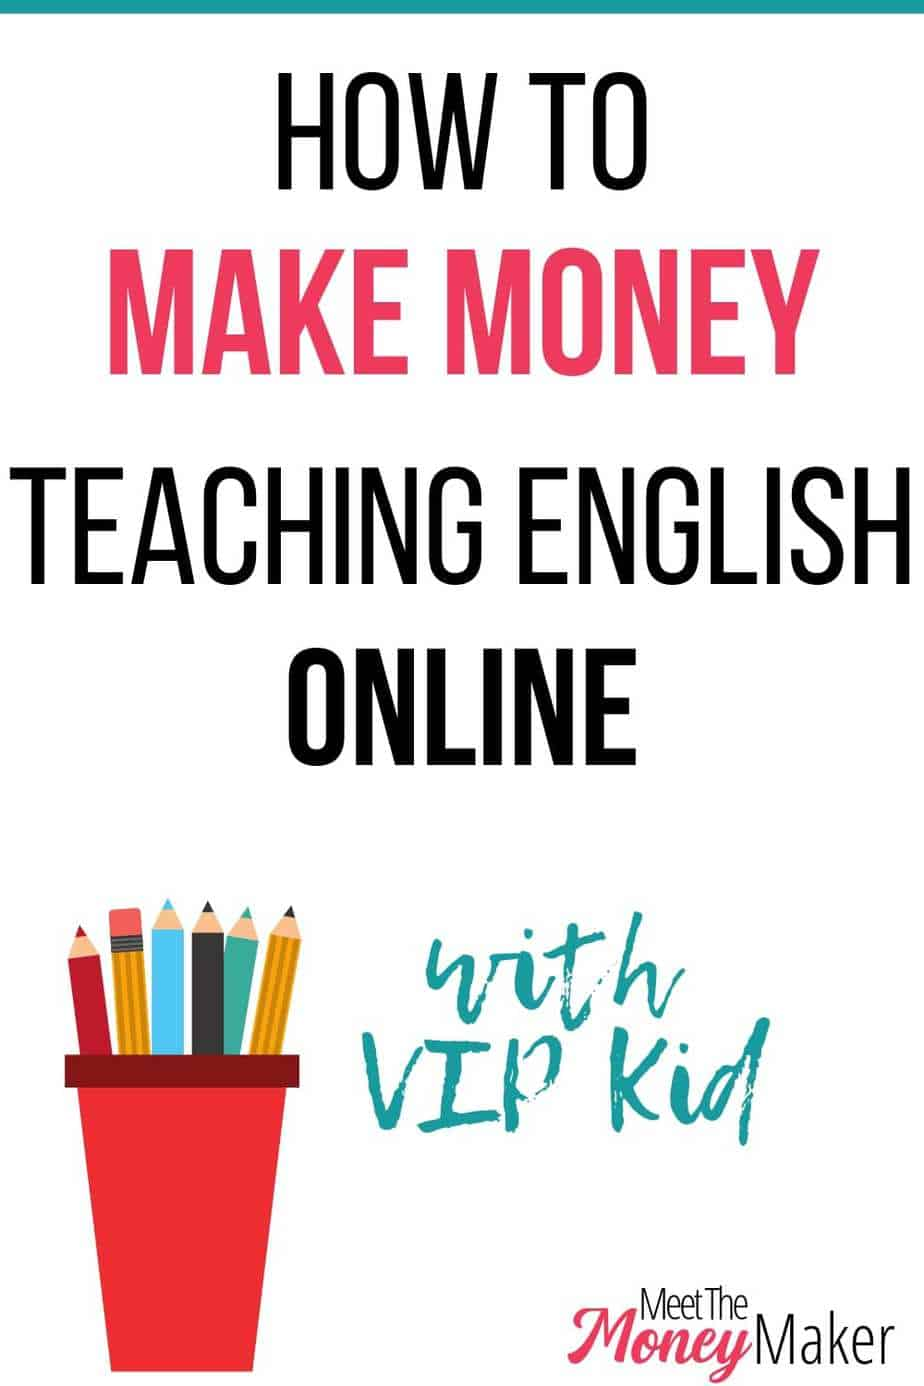 Make money teaching english with vip kid